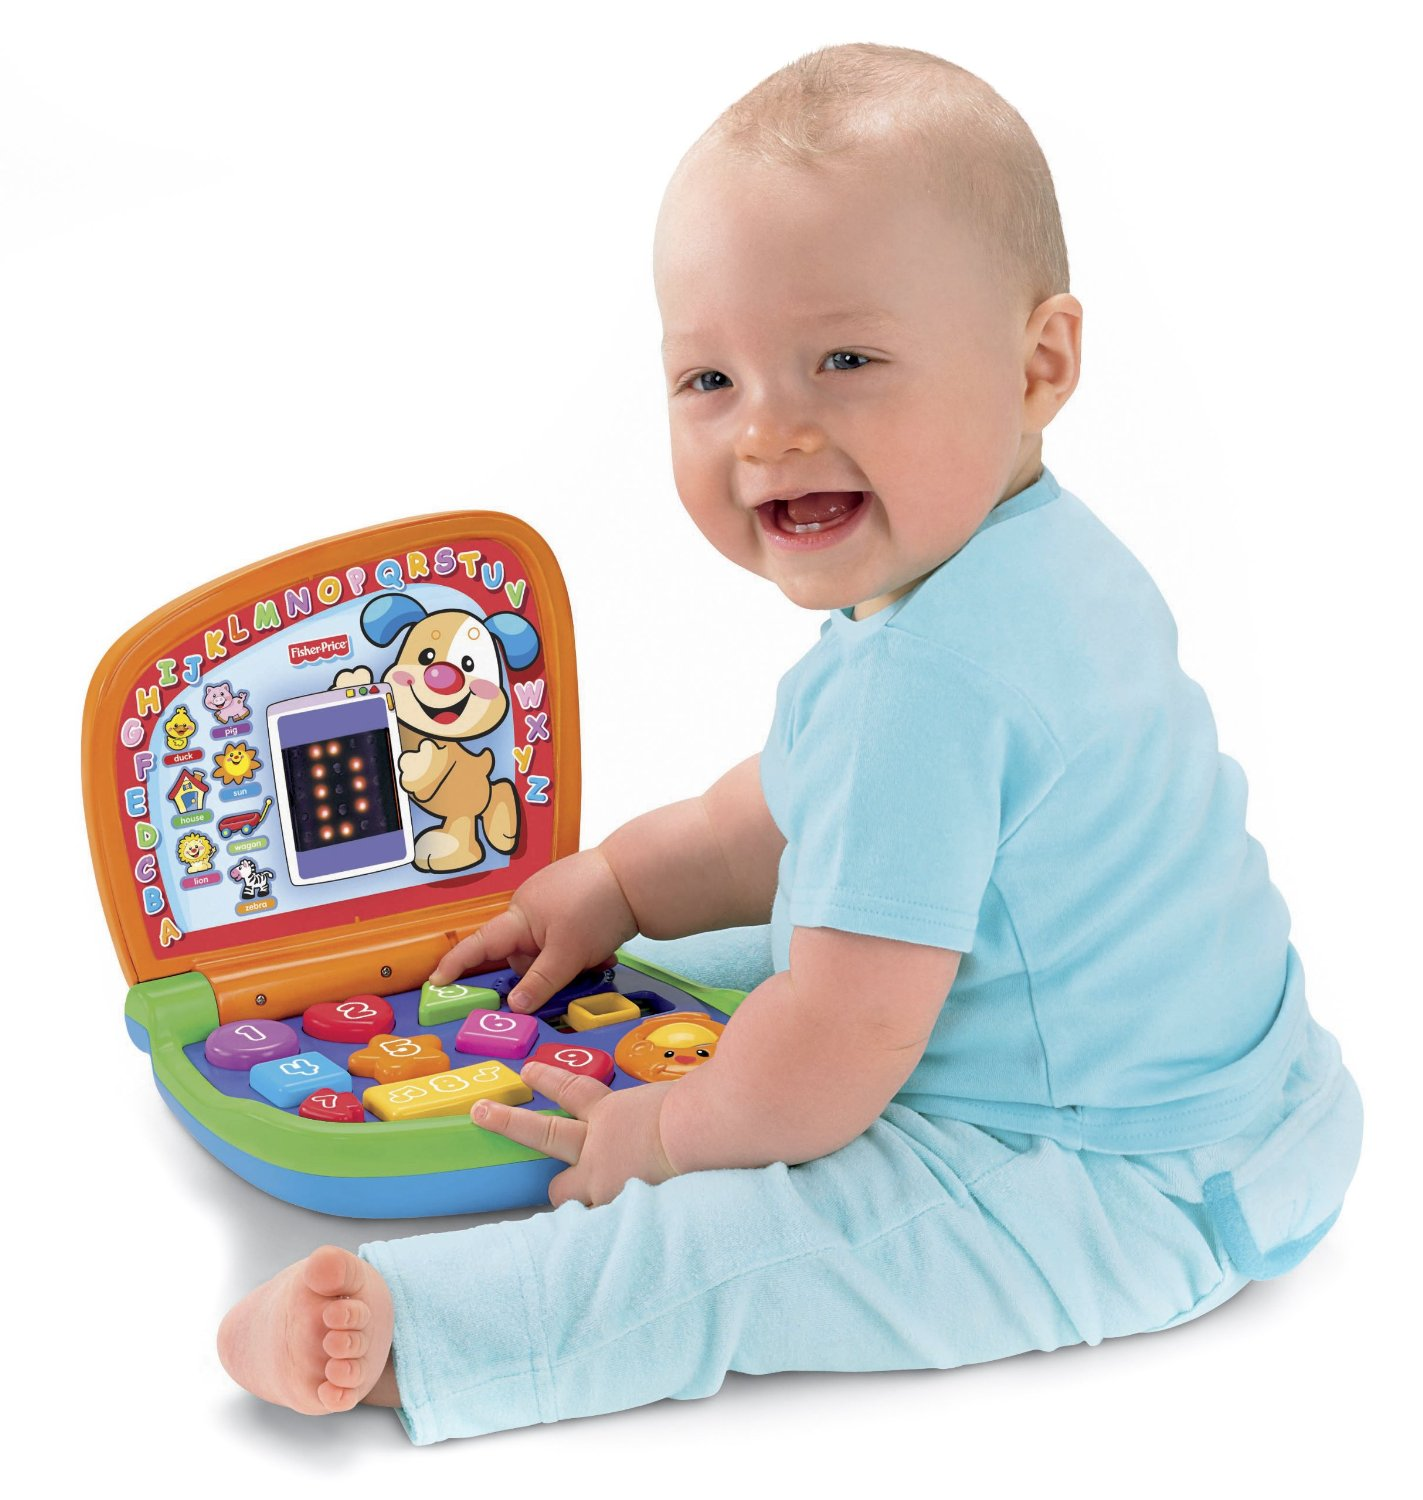 Baby Toys Age 4 : Toys for babies by age to month old